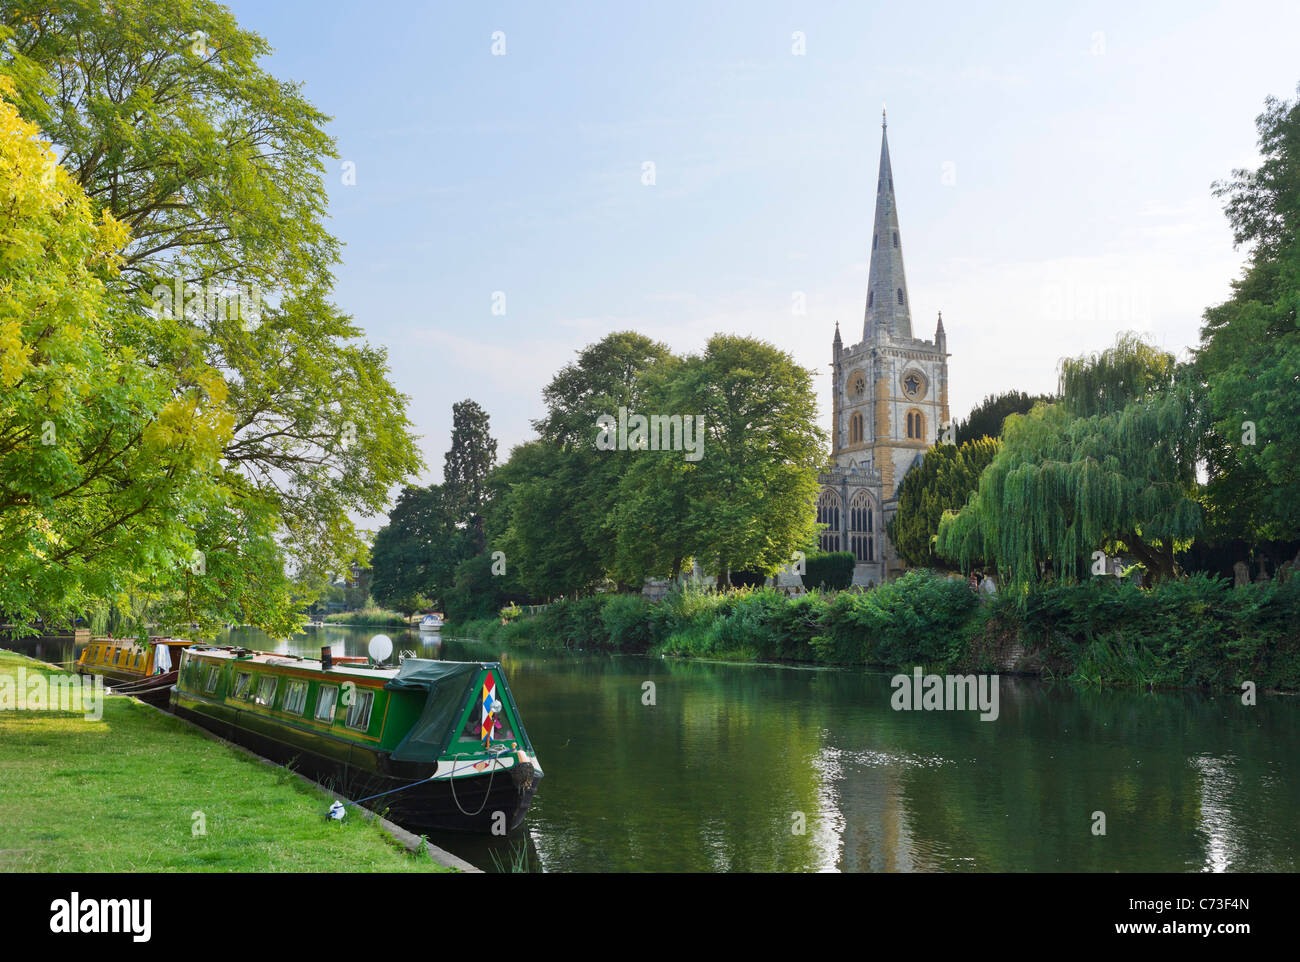 The Church of the Holy Trinity (where Shakespeare is buried) from across the River Avon, Stratford-upon-Avon, Warwickshire, - Stock Image